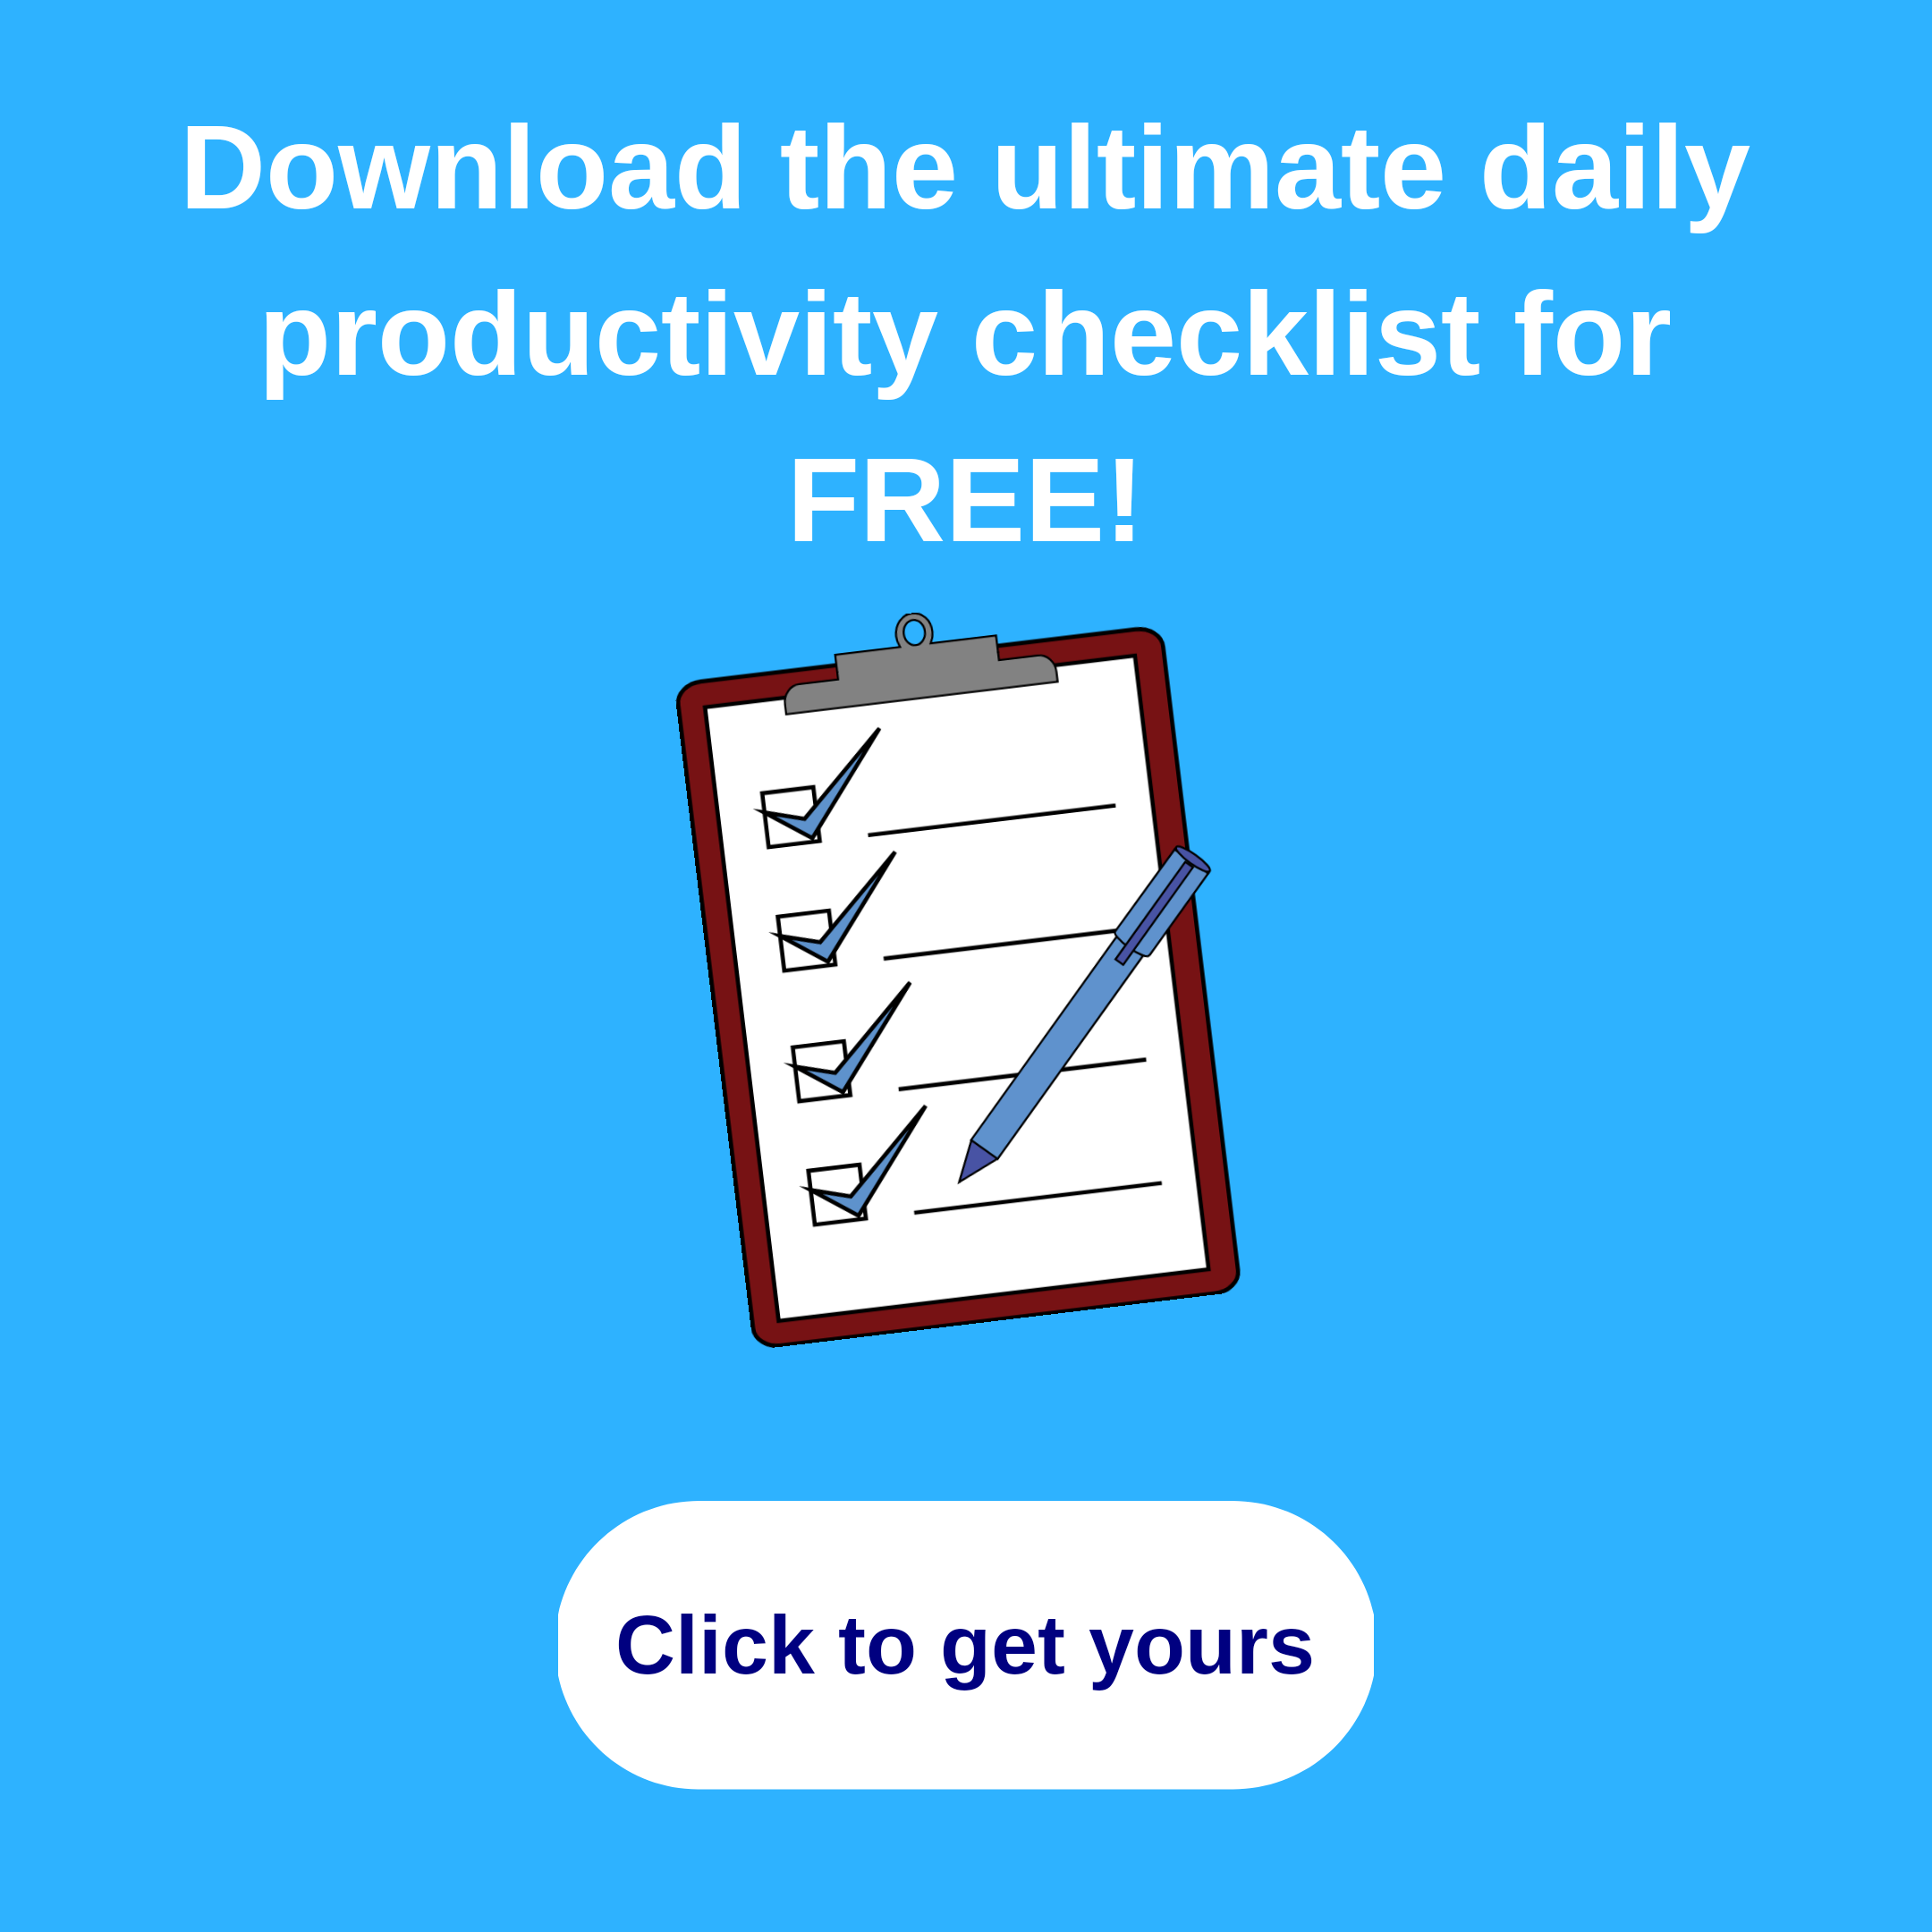 Download the productivity checklist